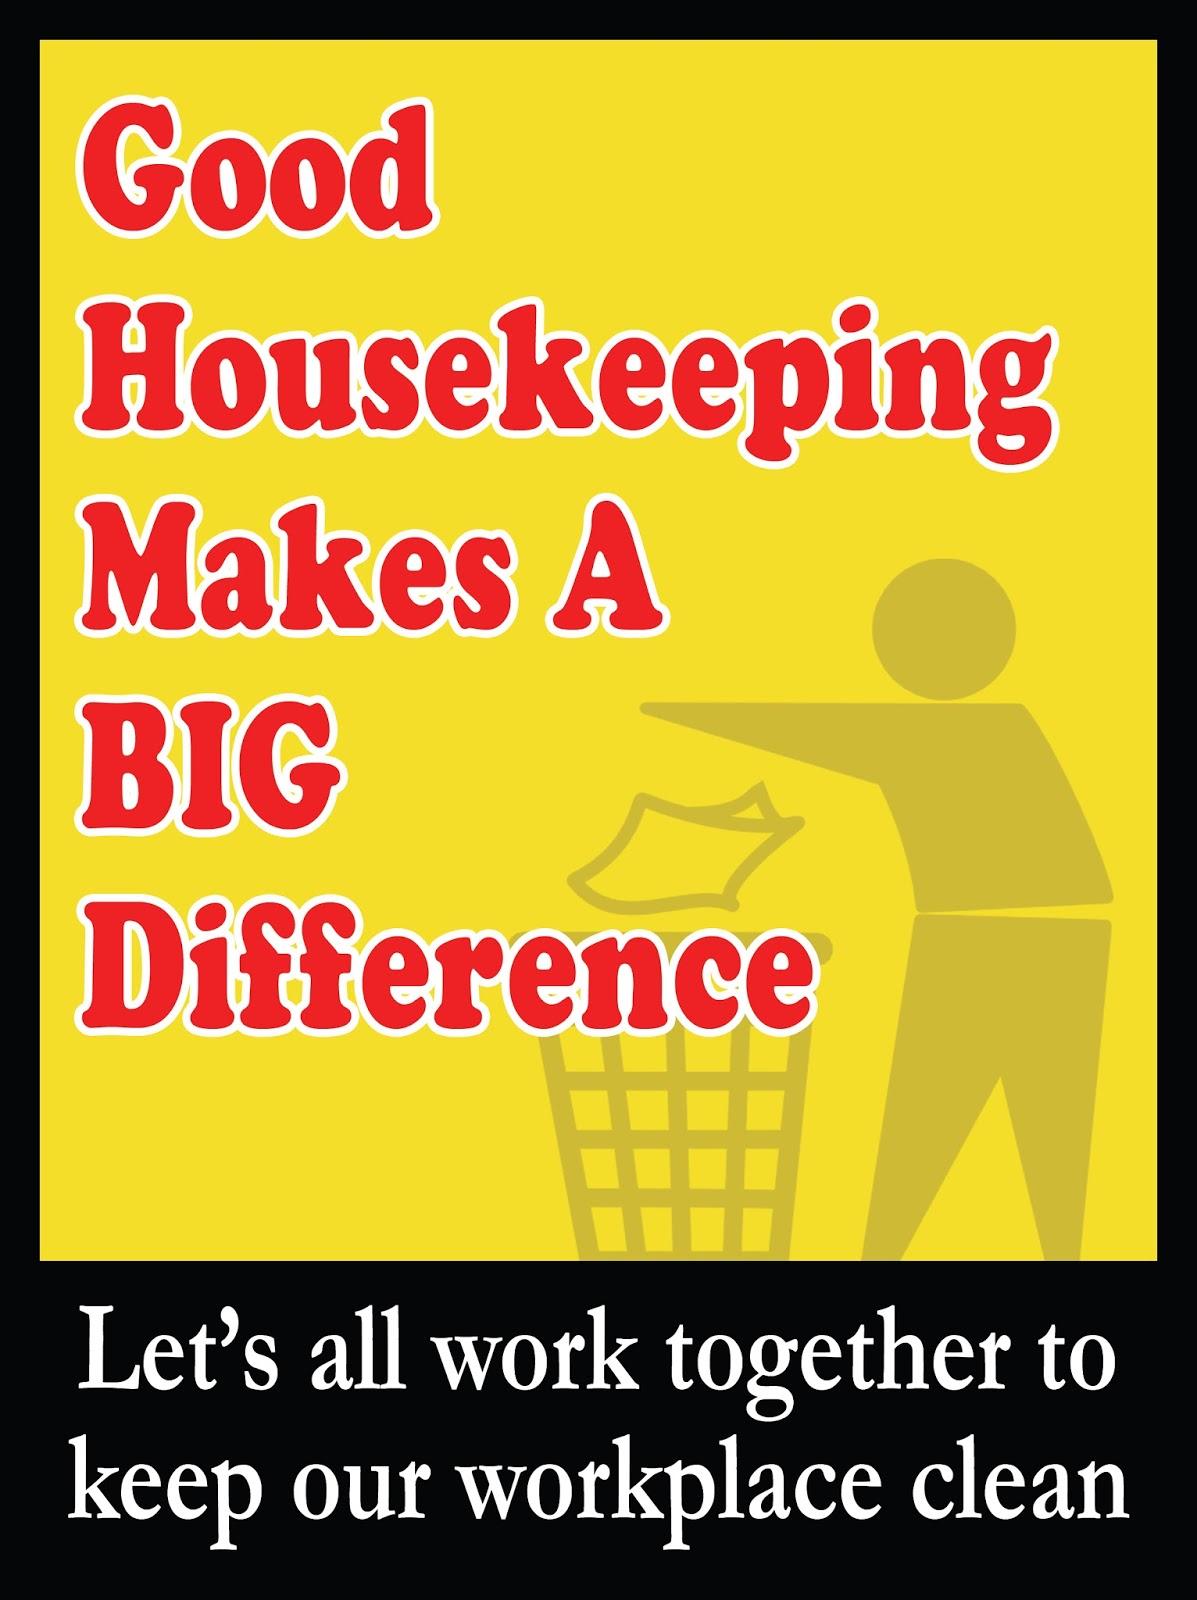 Housekeeping Quotes House Keeping Safety Slogans And Posters  Safety Posters